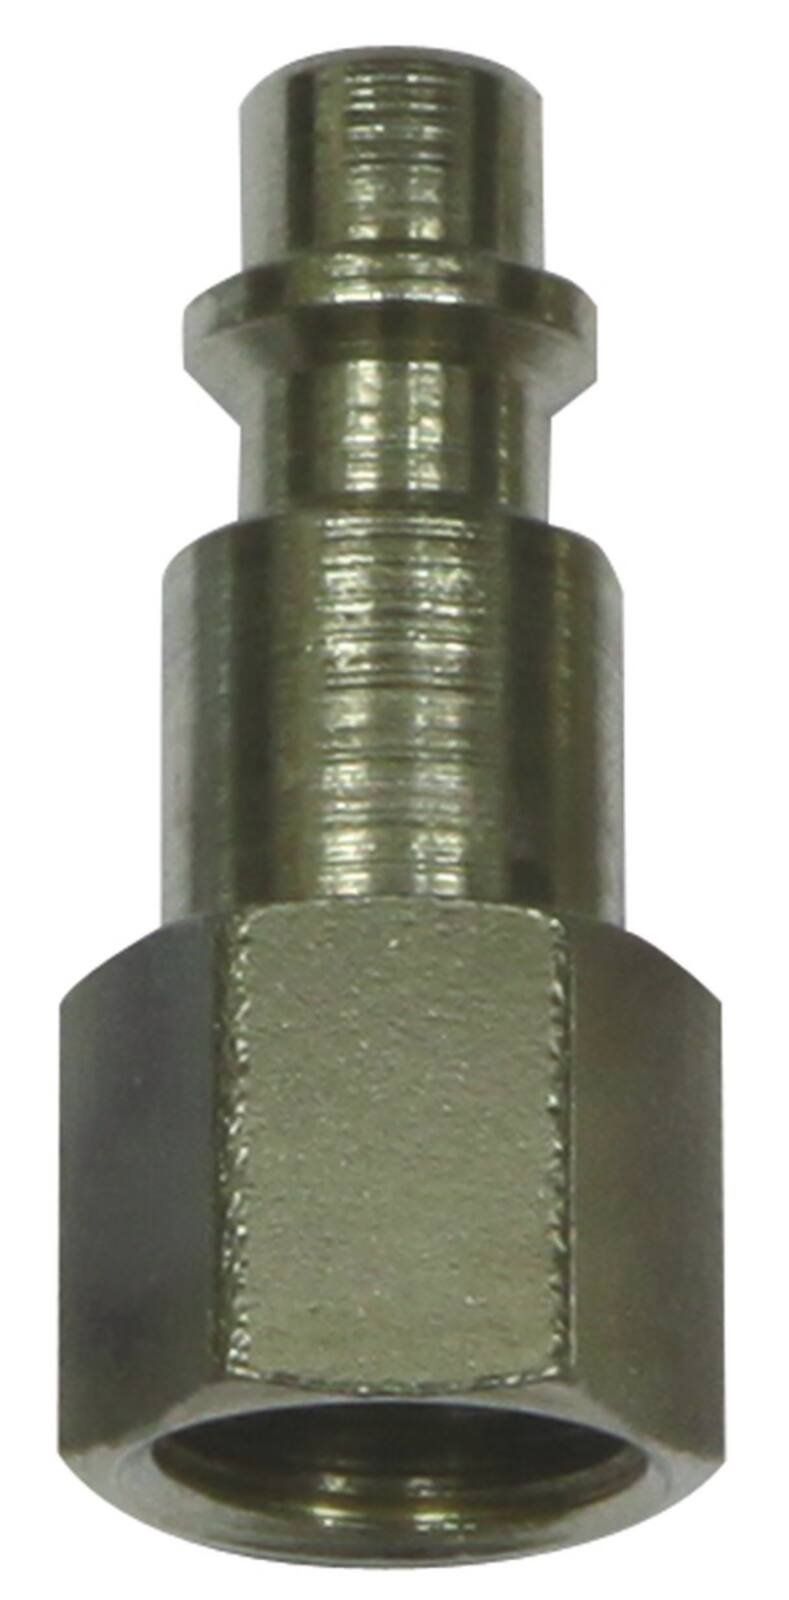 10 embouts irp passage 6mm taraude femelle 1/4""